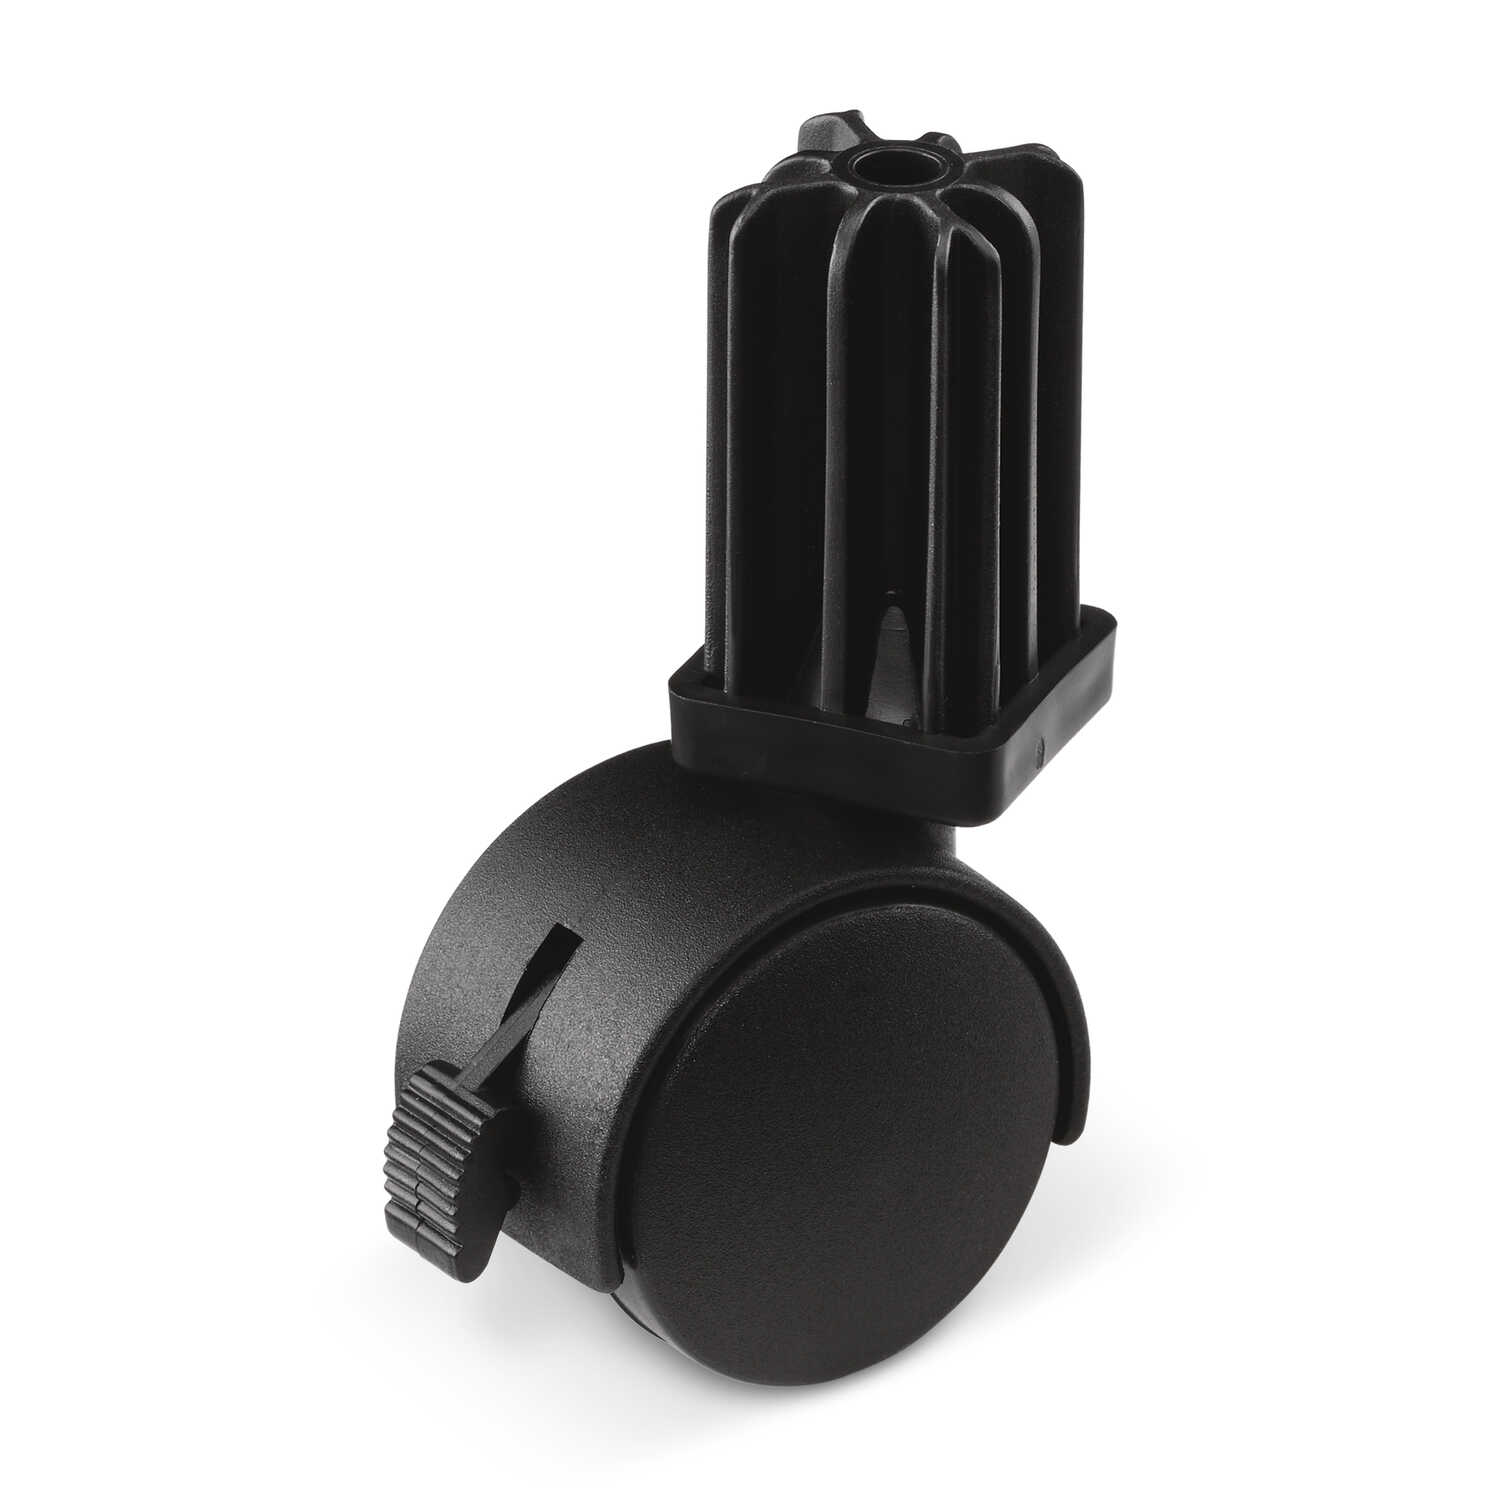 Weber Plastic Grill Caster Replacement 1.5 in. W x 2.5 in. L x 4.6 ...